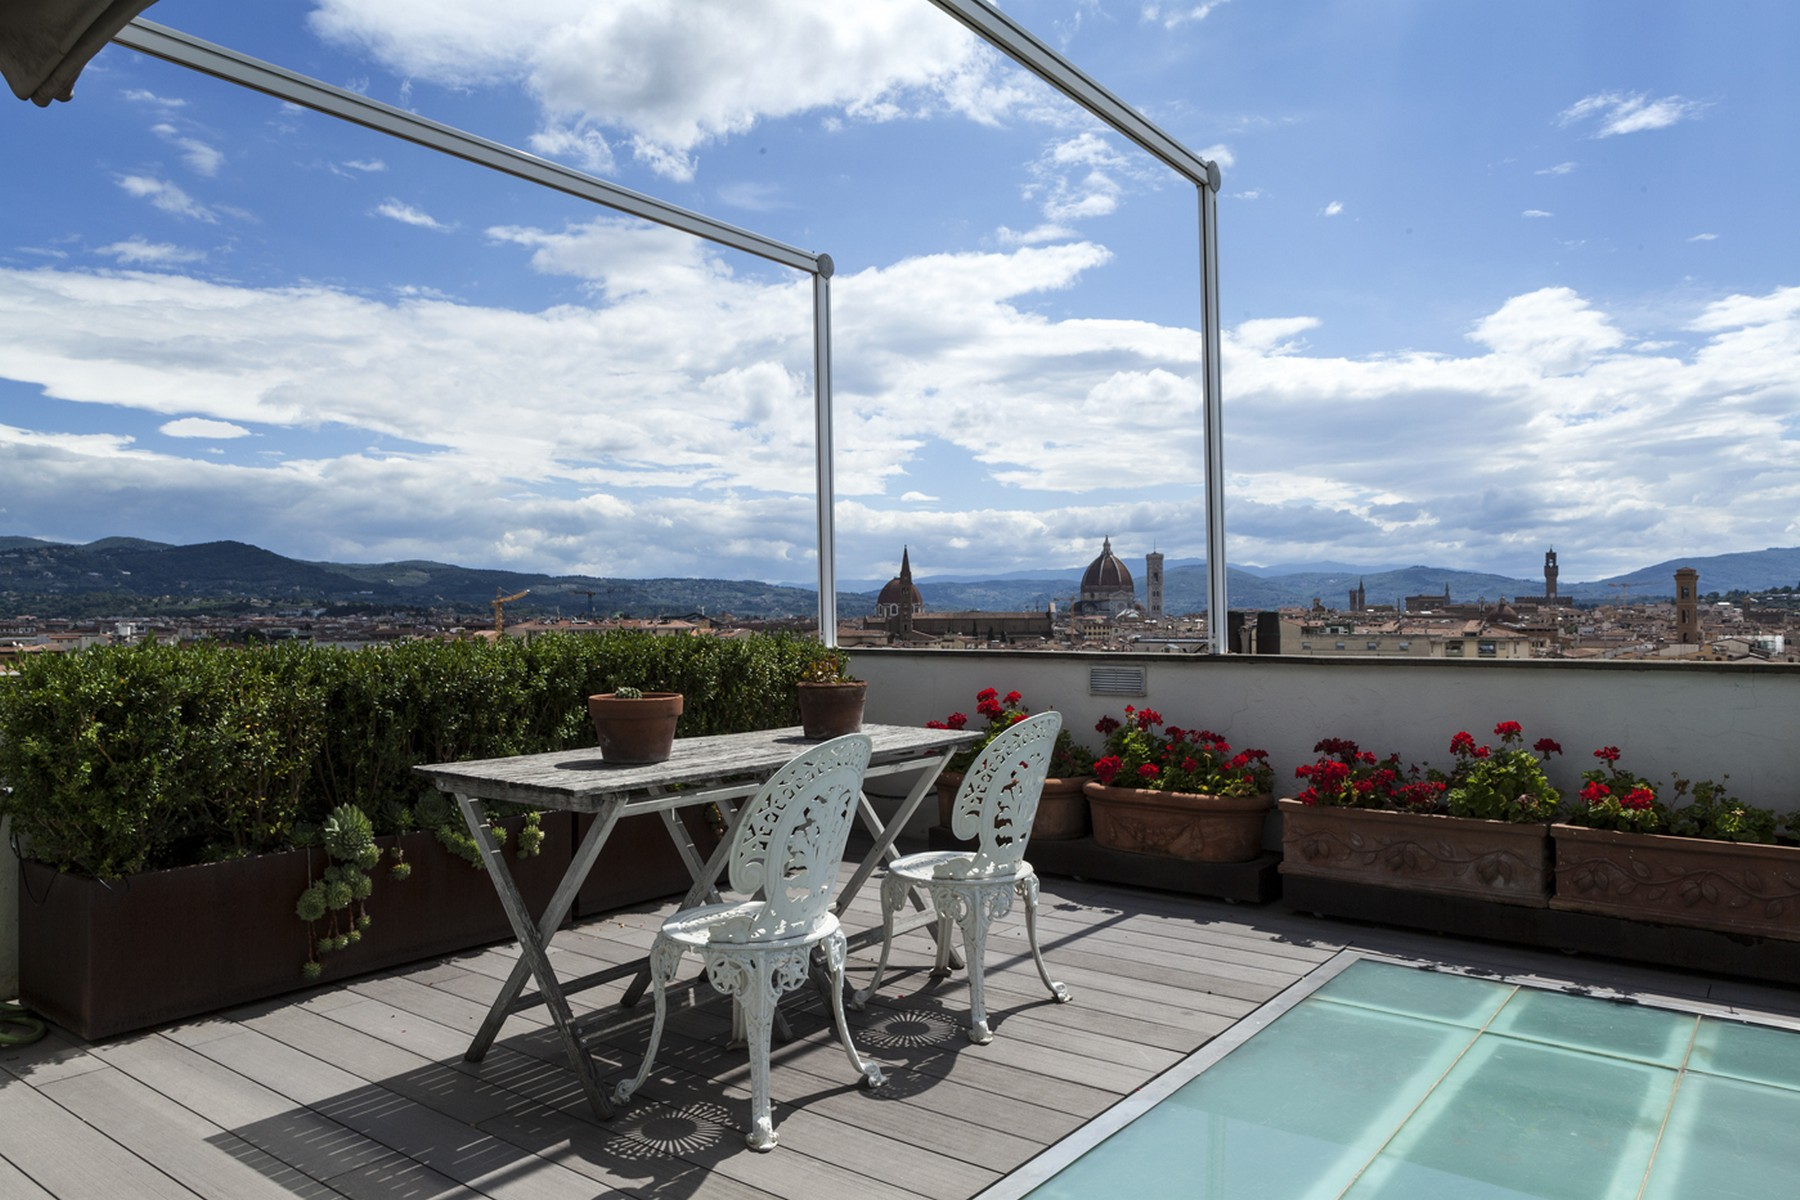 Apartamento por un Venta en Stunning penthouse with pool and views over Florence Via Solferino Firenze, Florence 50123 Italia